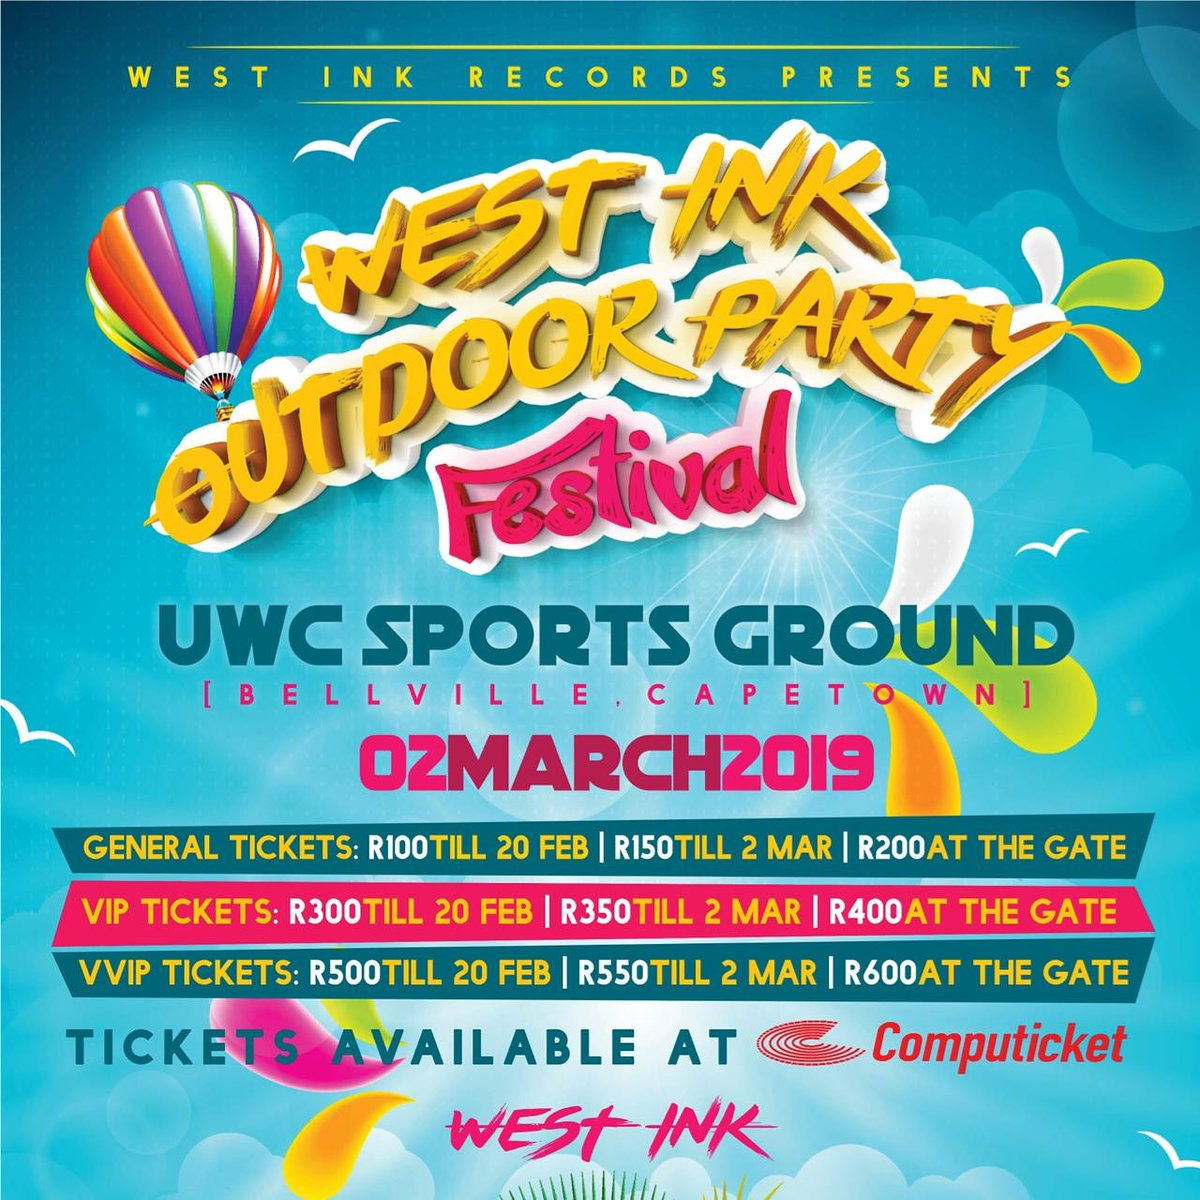 Tipcee to perform at West Ink Outdoor Festival